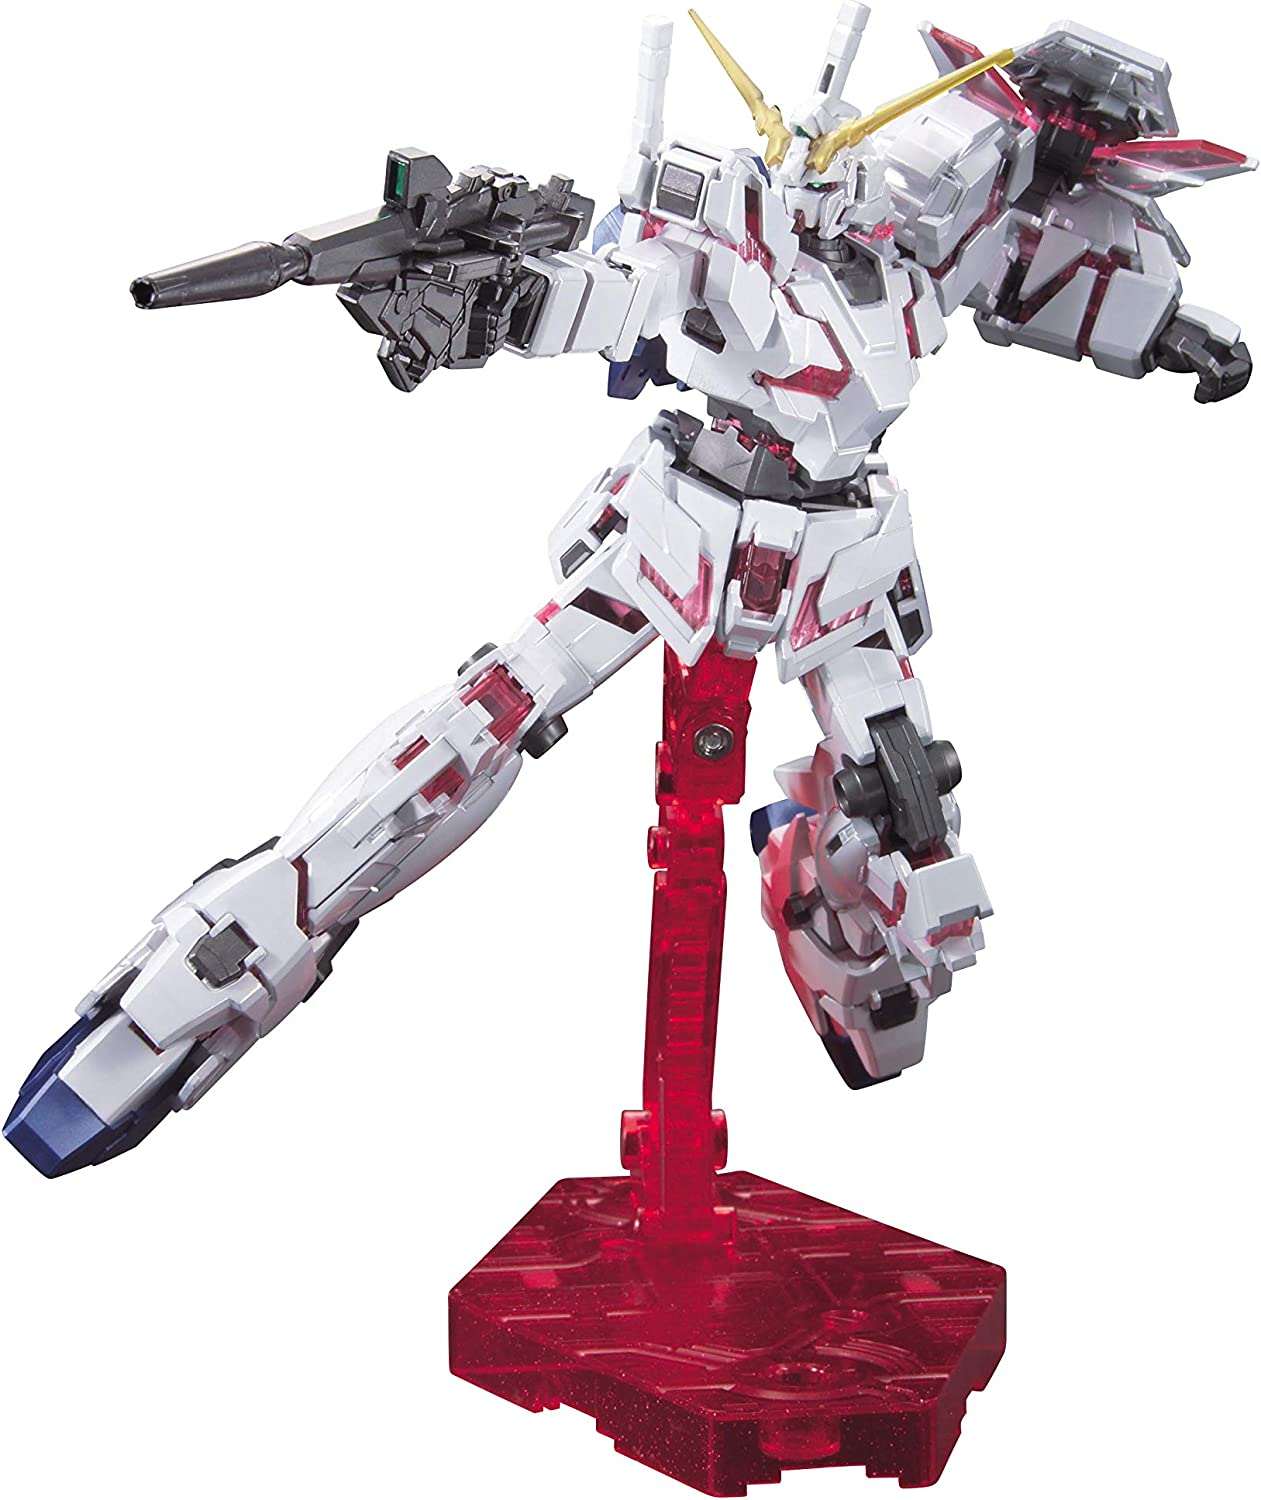 BANDAI HGUC Mobile Suit Gundam Unicorn Gundam DESTROY MODE 1//144 Plastic Model